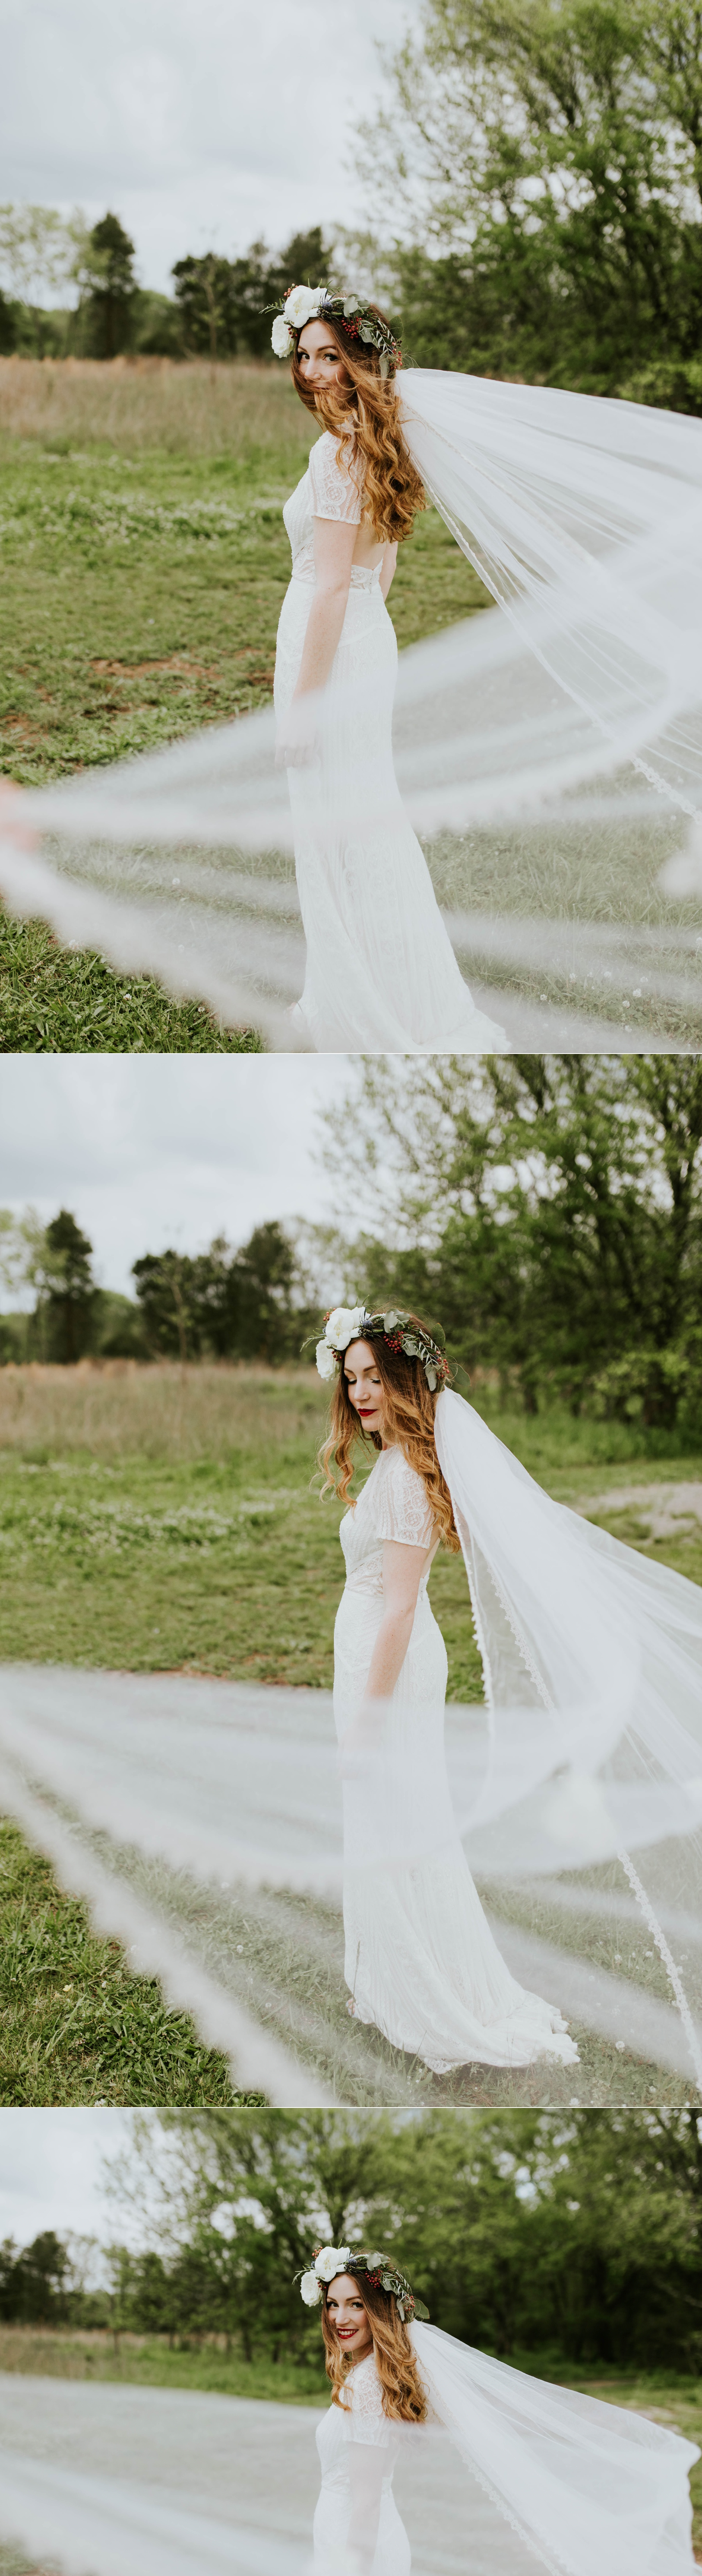 ThroughVictoriasLens_CedarsOfLebanon_Bridals9.jpg